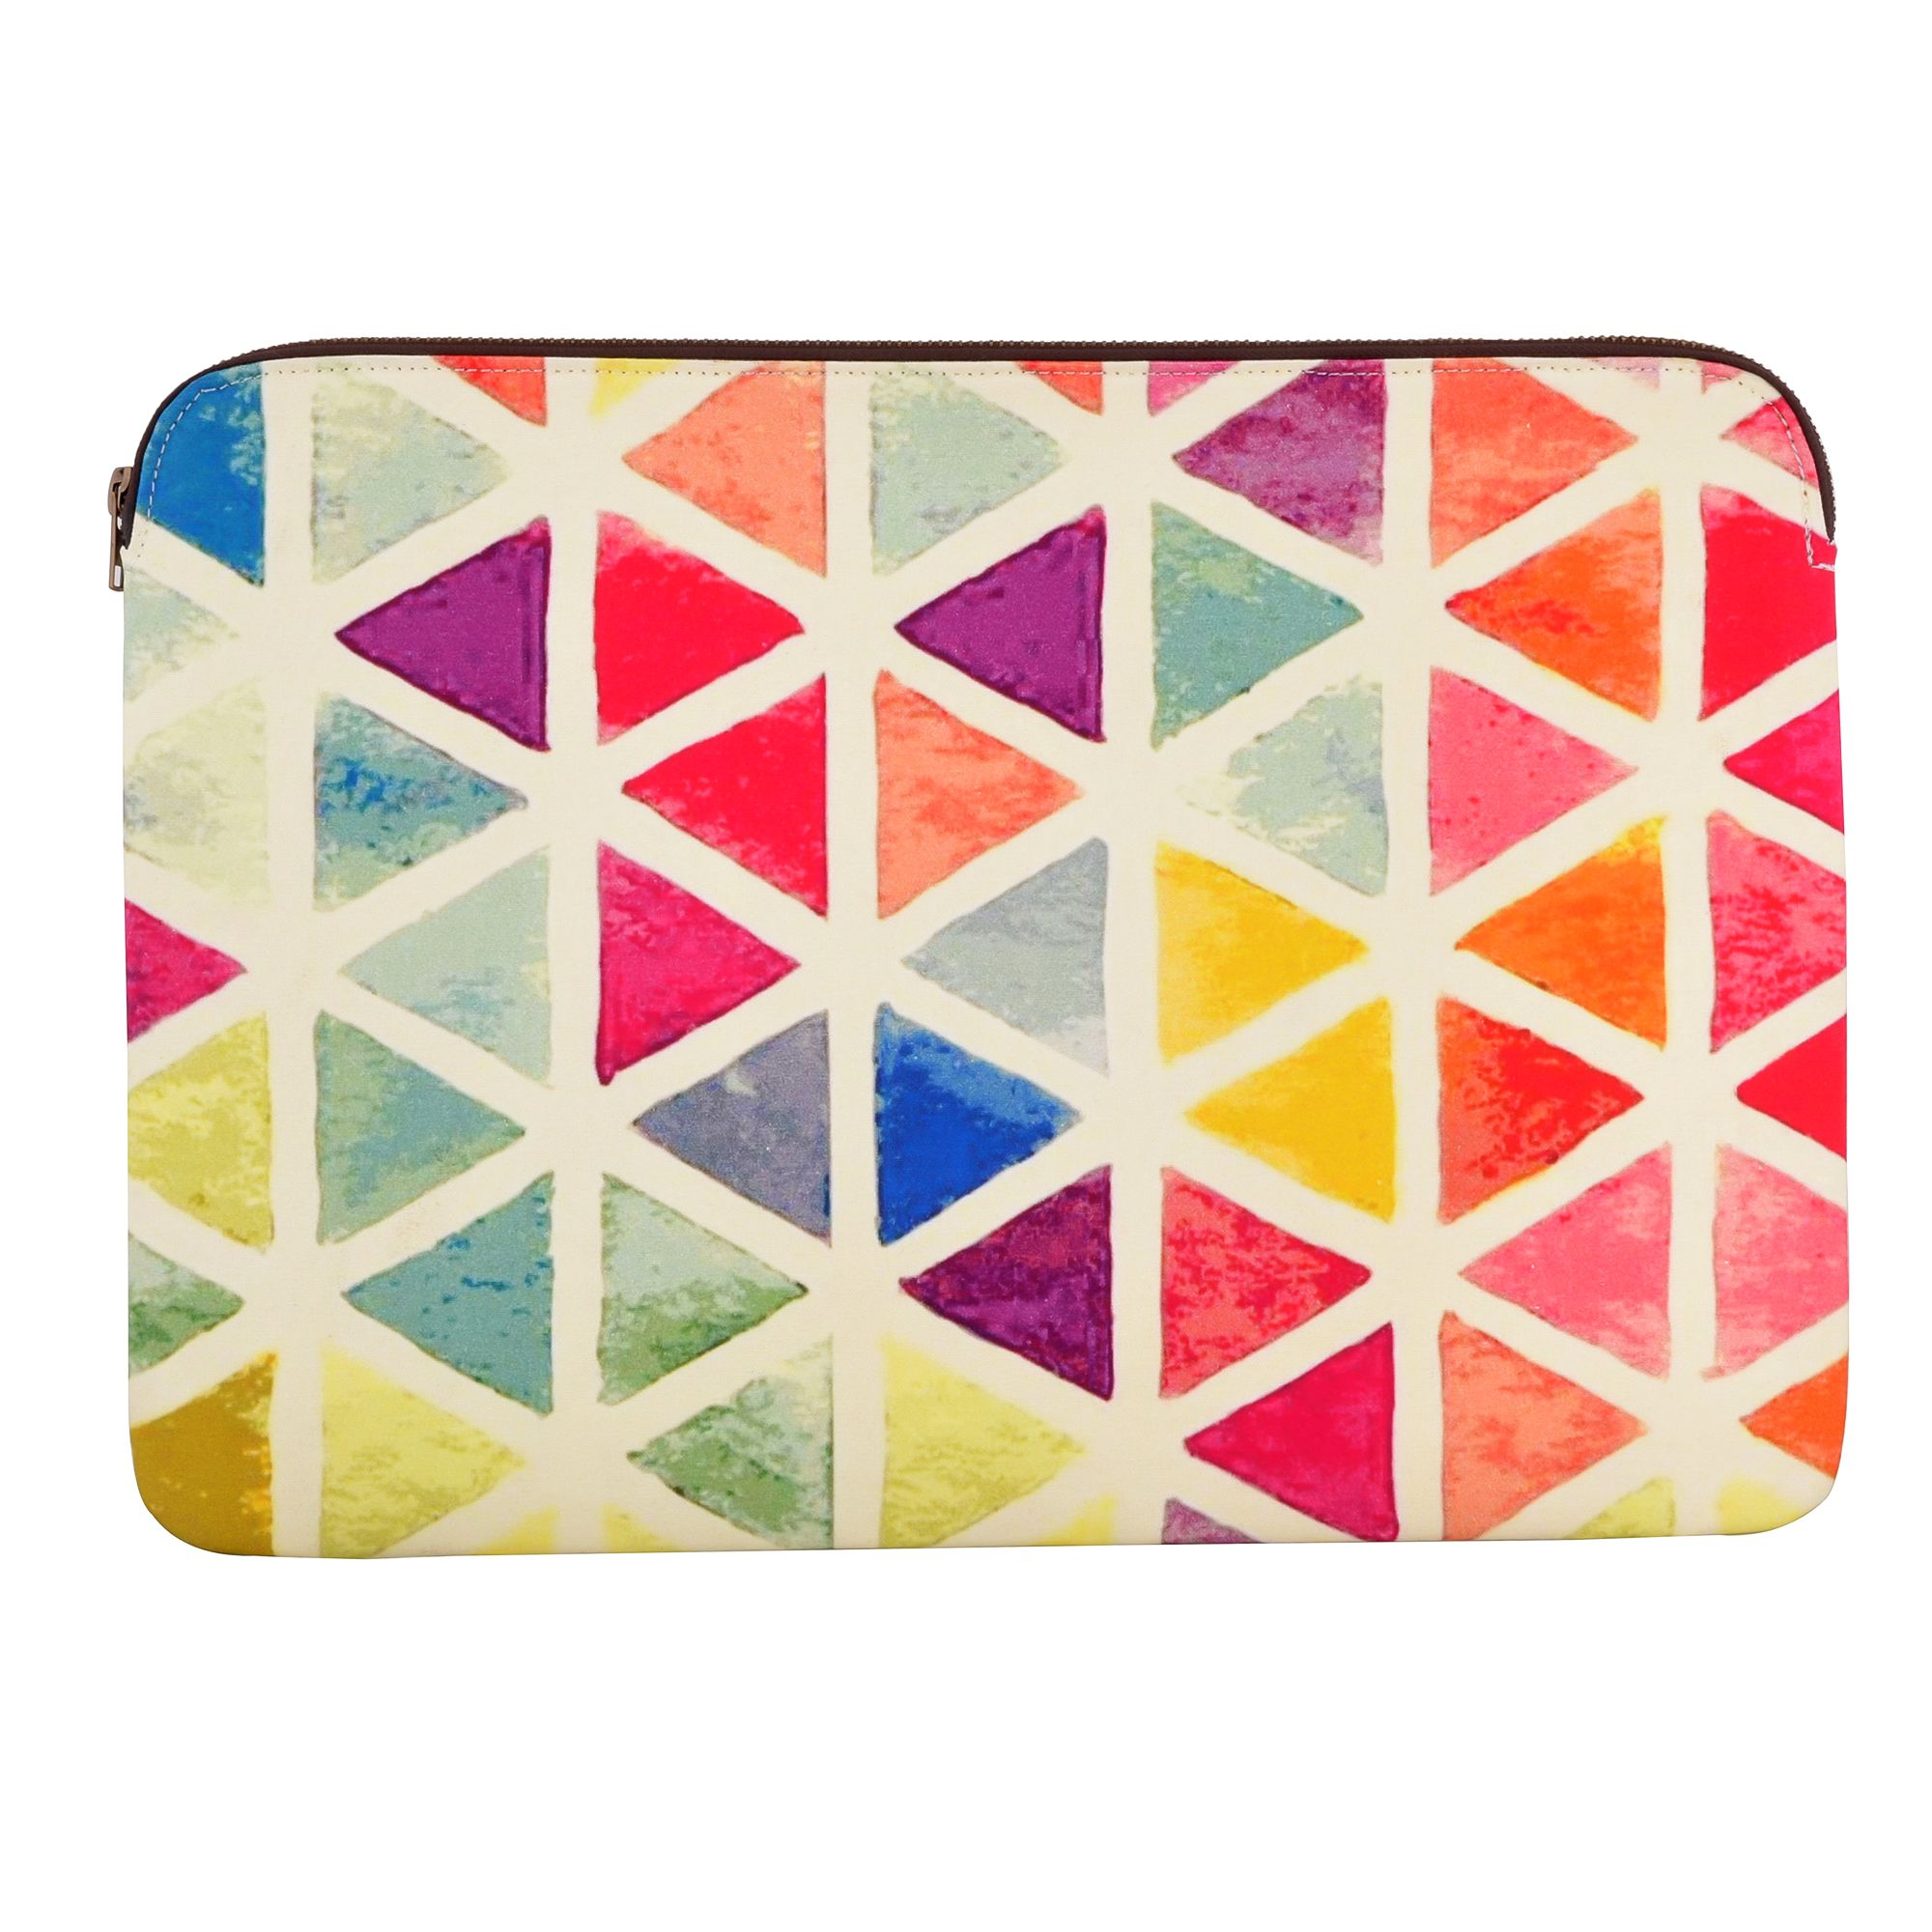 "Triangular Circus 15.6"" Protective Laptop Case"